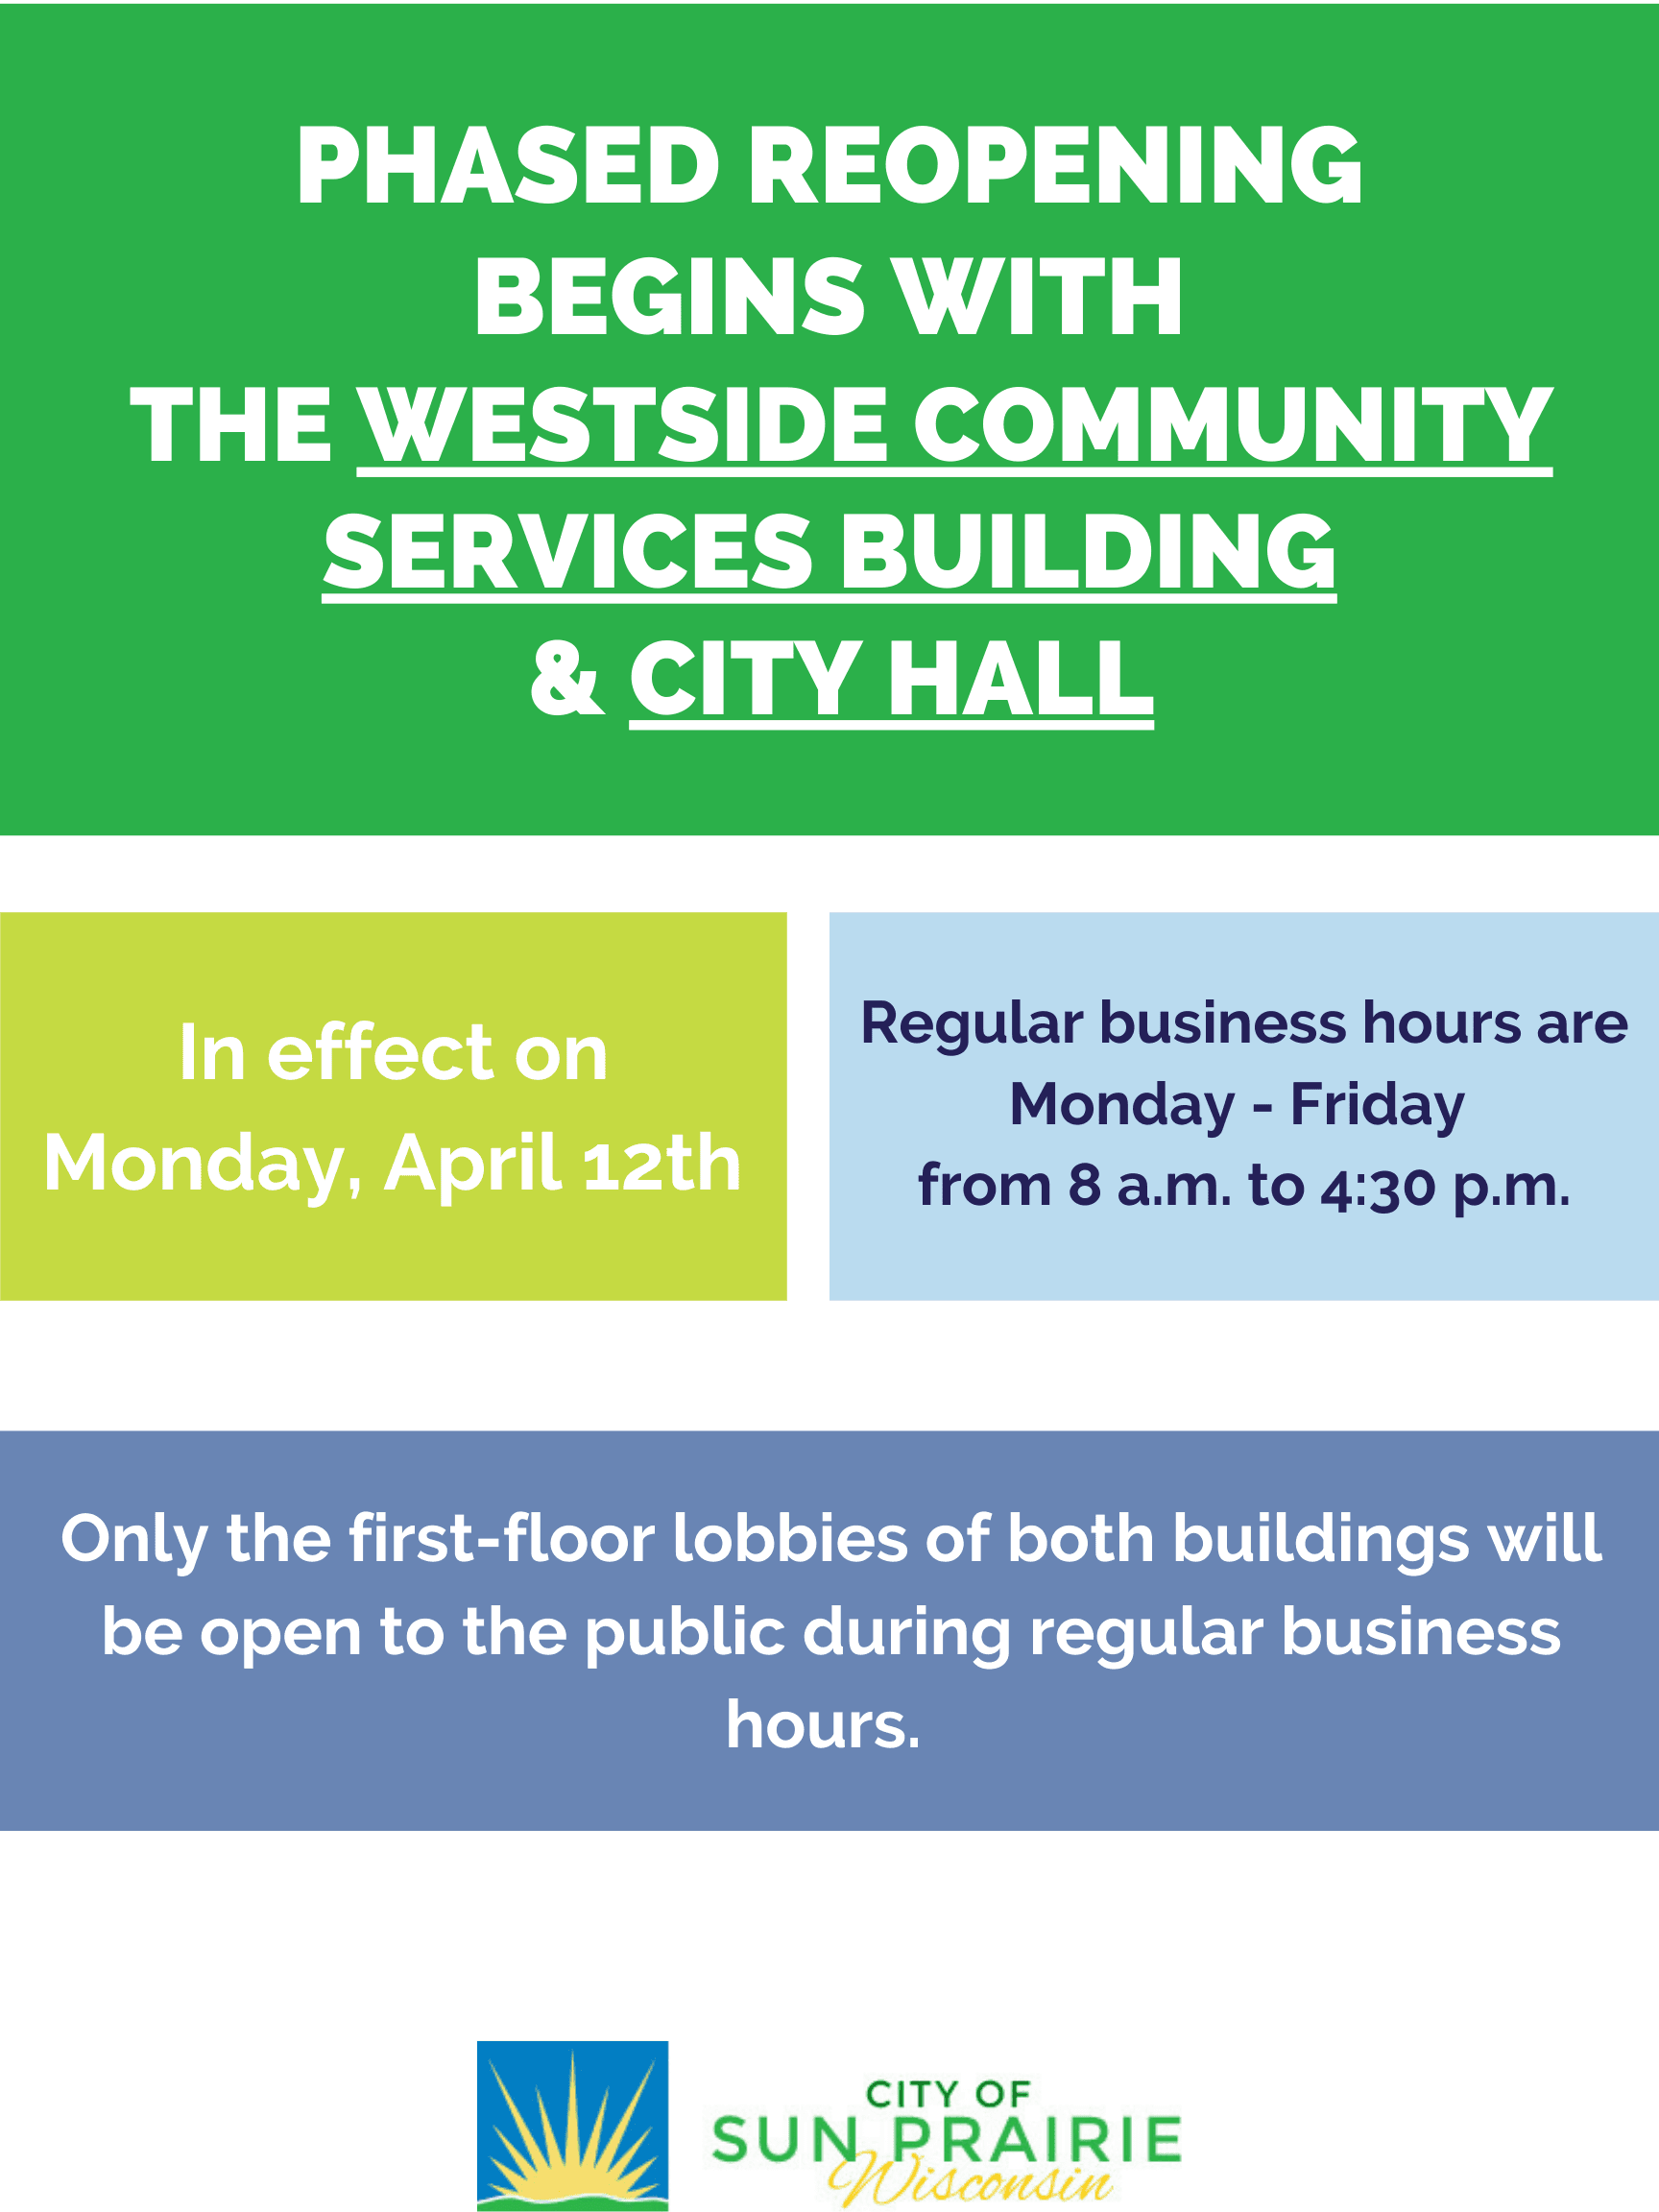 phased reopening begins with the Westside Community Services building and City hall